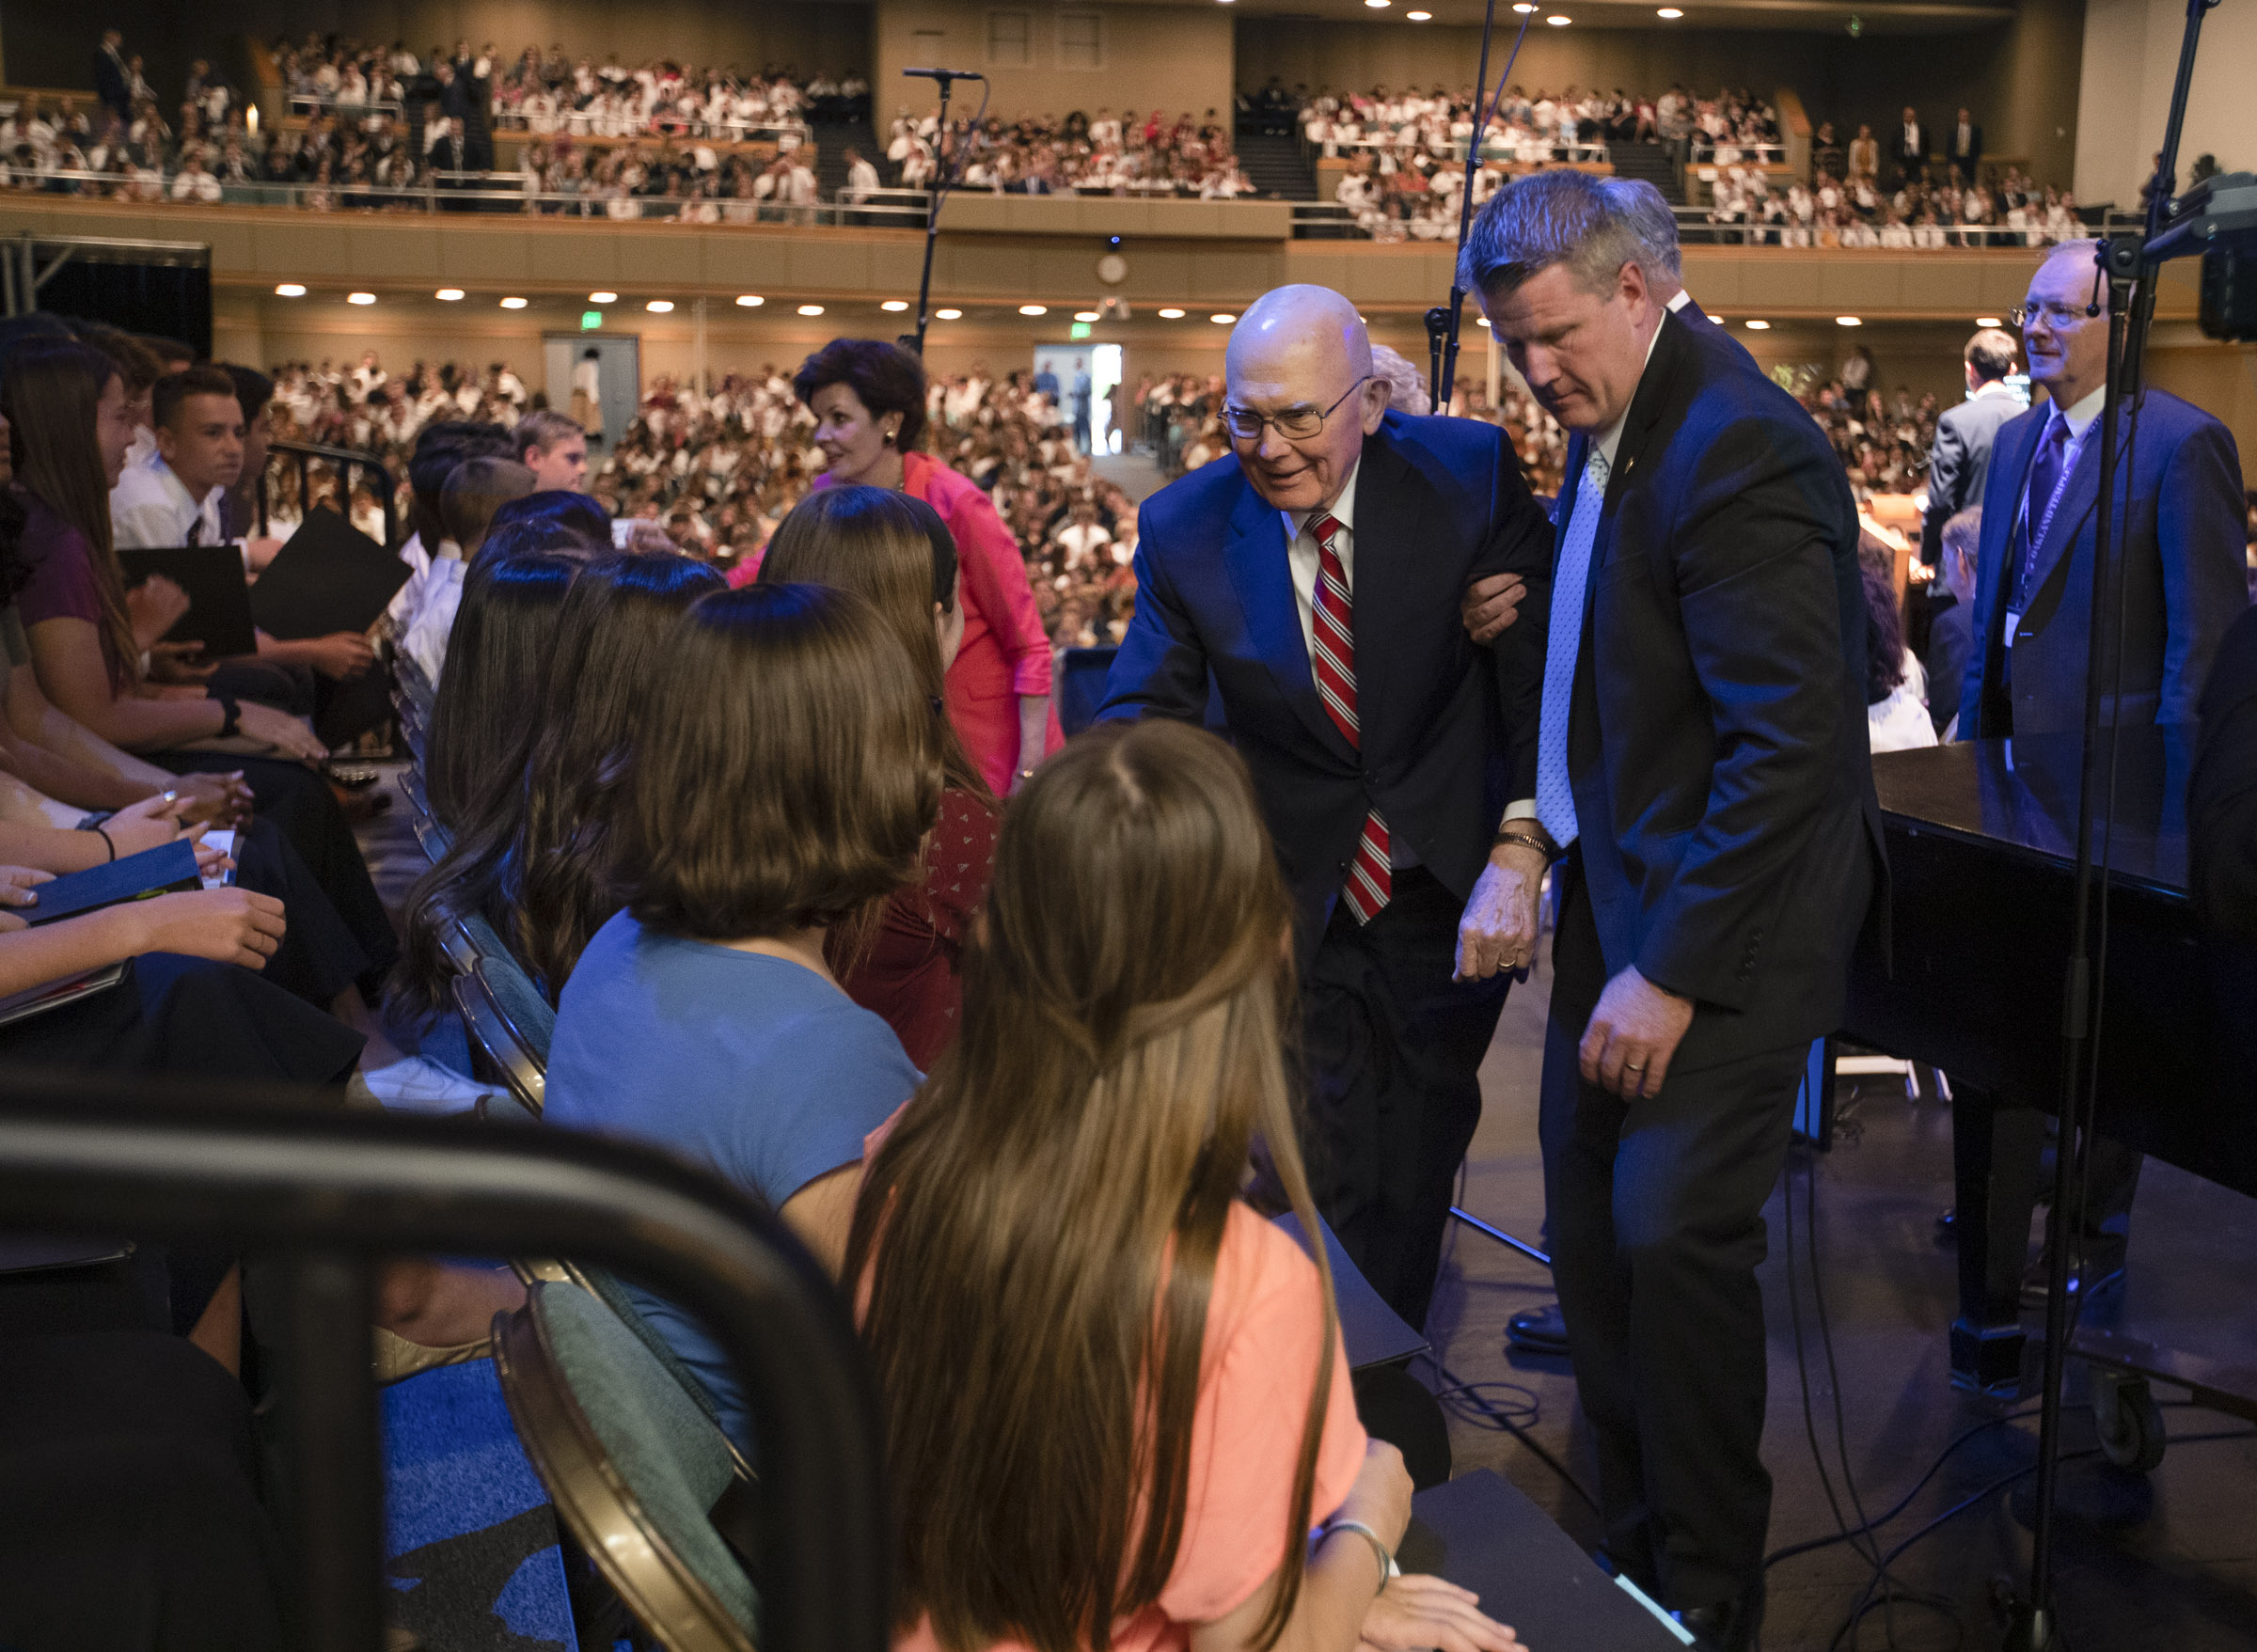 President Dallin H. Oaks, first counselor in the First Presidency of The Church of Jesus Christ of Latter-day Saints, shakes hands with youth attending a devotional at the Interstake Center on the Oakland California Temple grounds on Saturday, June 15, 2019.